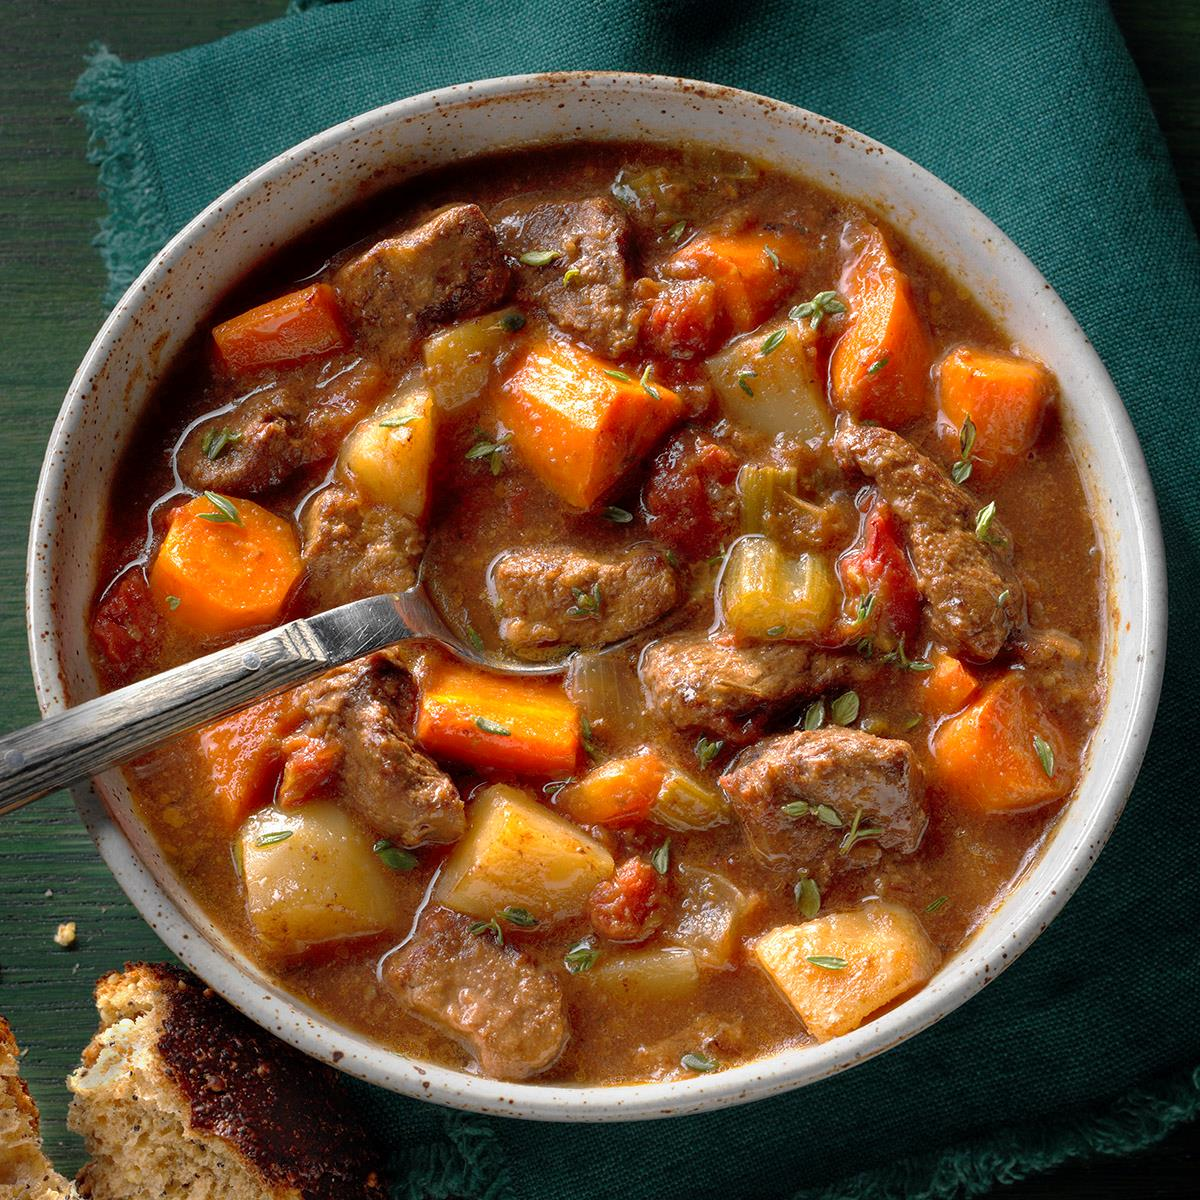 Slow Cooker Beef Stew Recipe How To Make It Taste Of Home